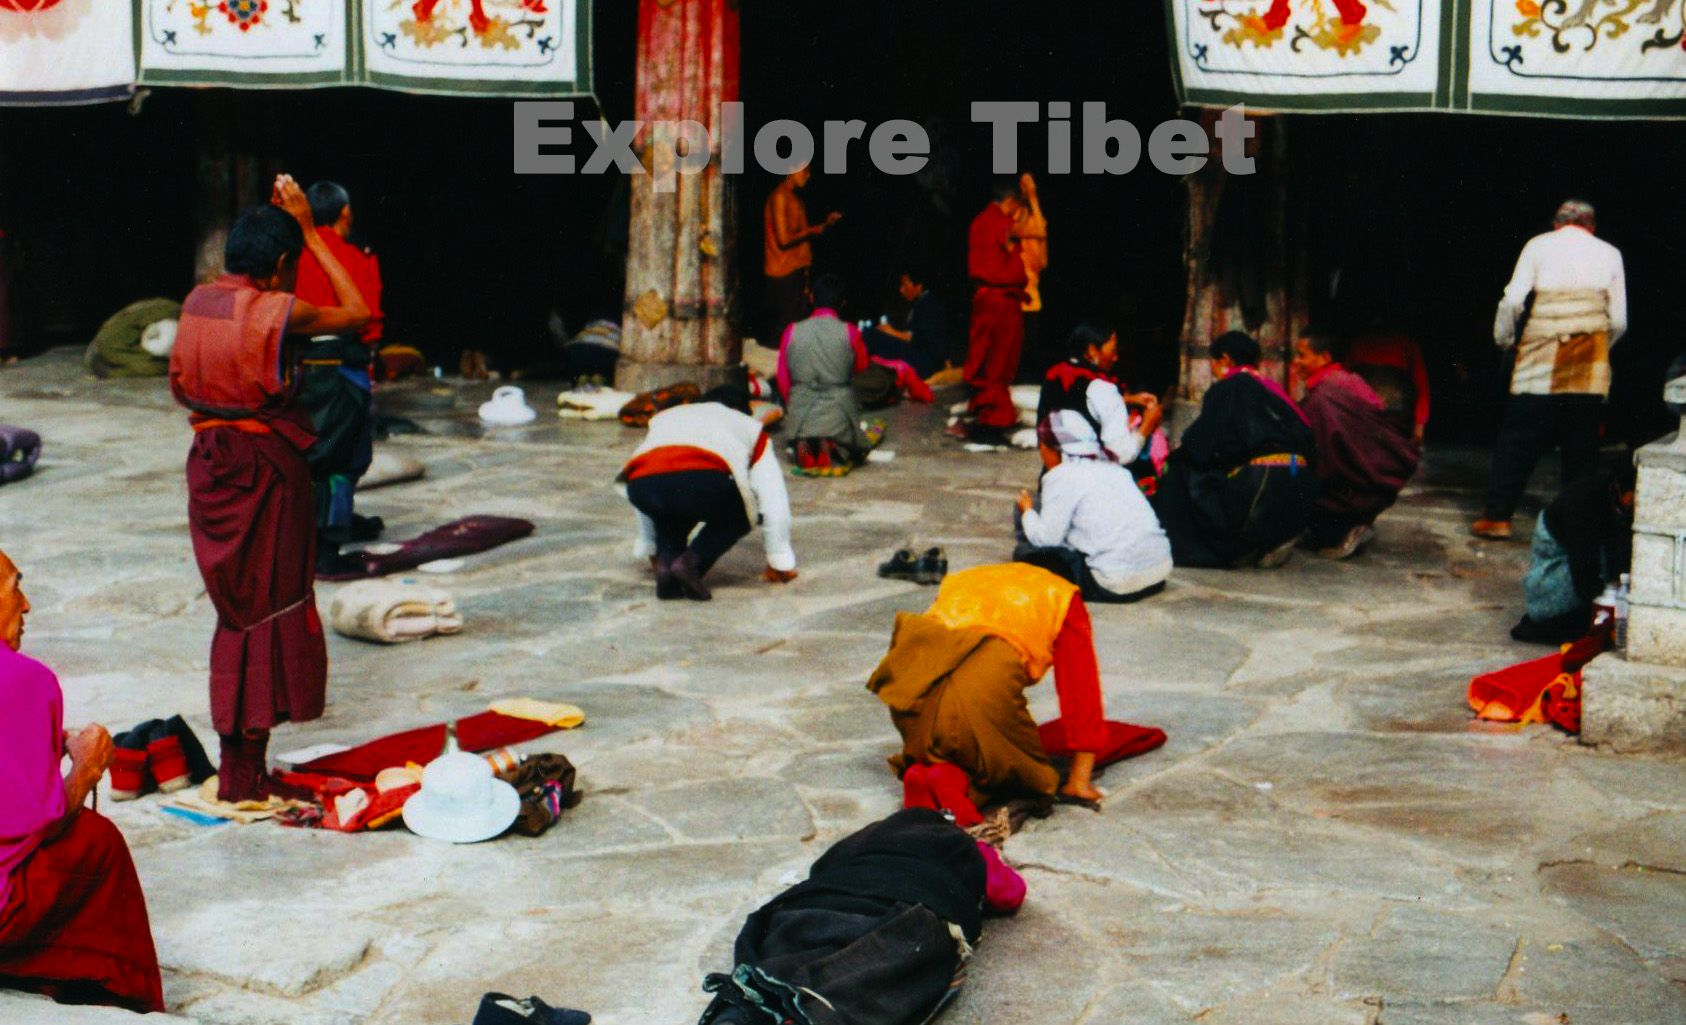 Prostrating near Jokhang Temple at Barkhor Street -Explore Tibet